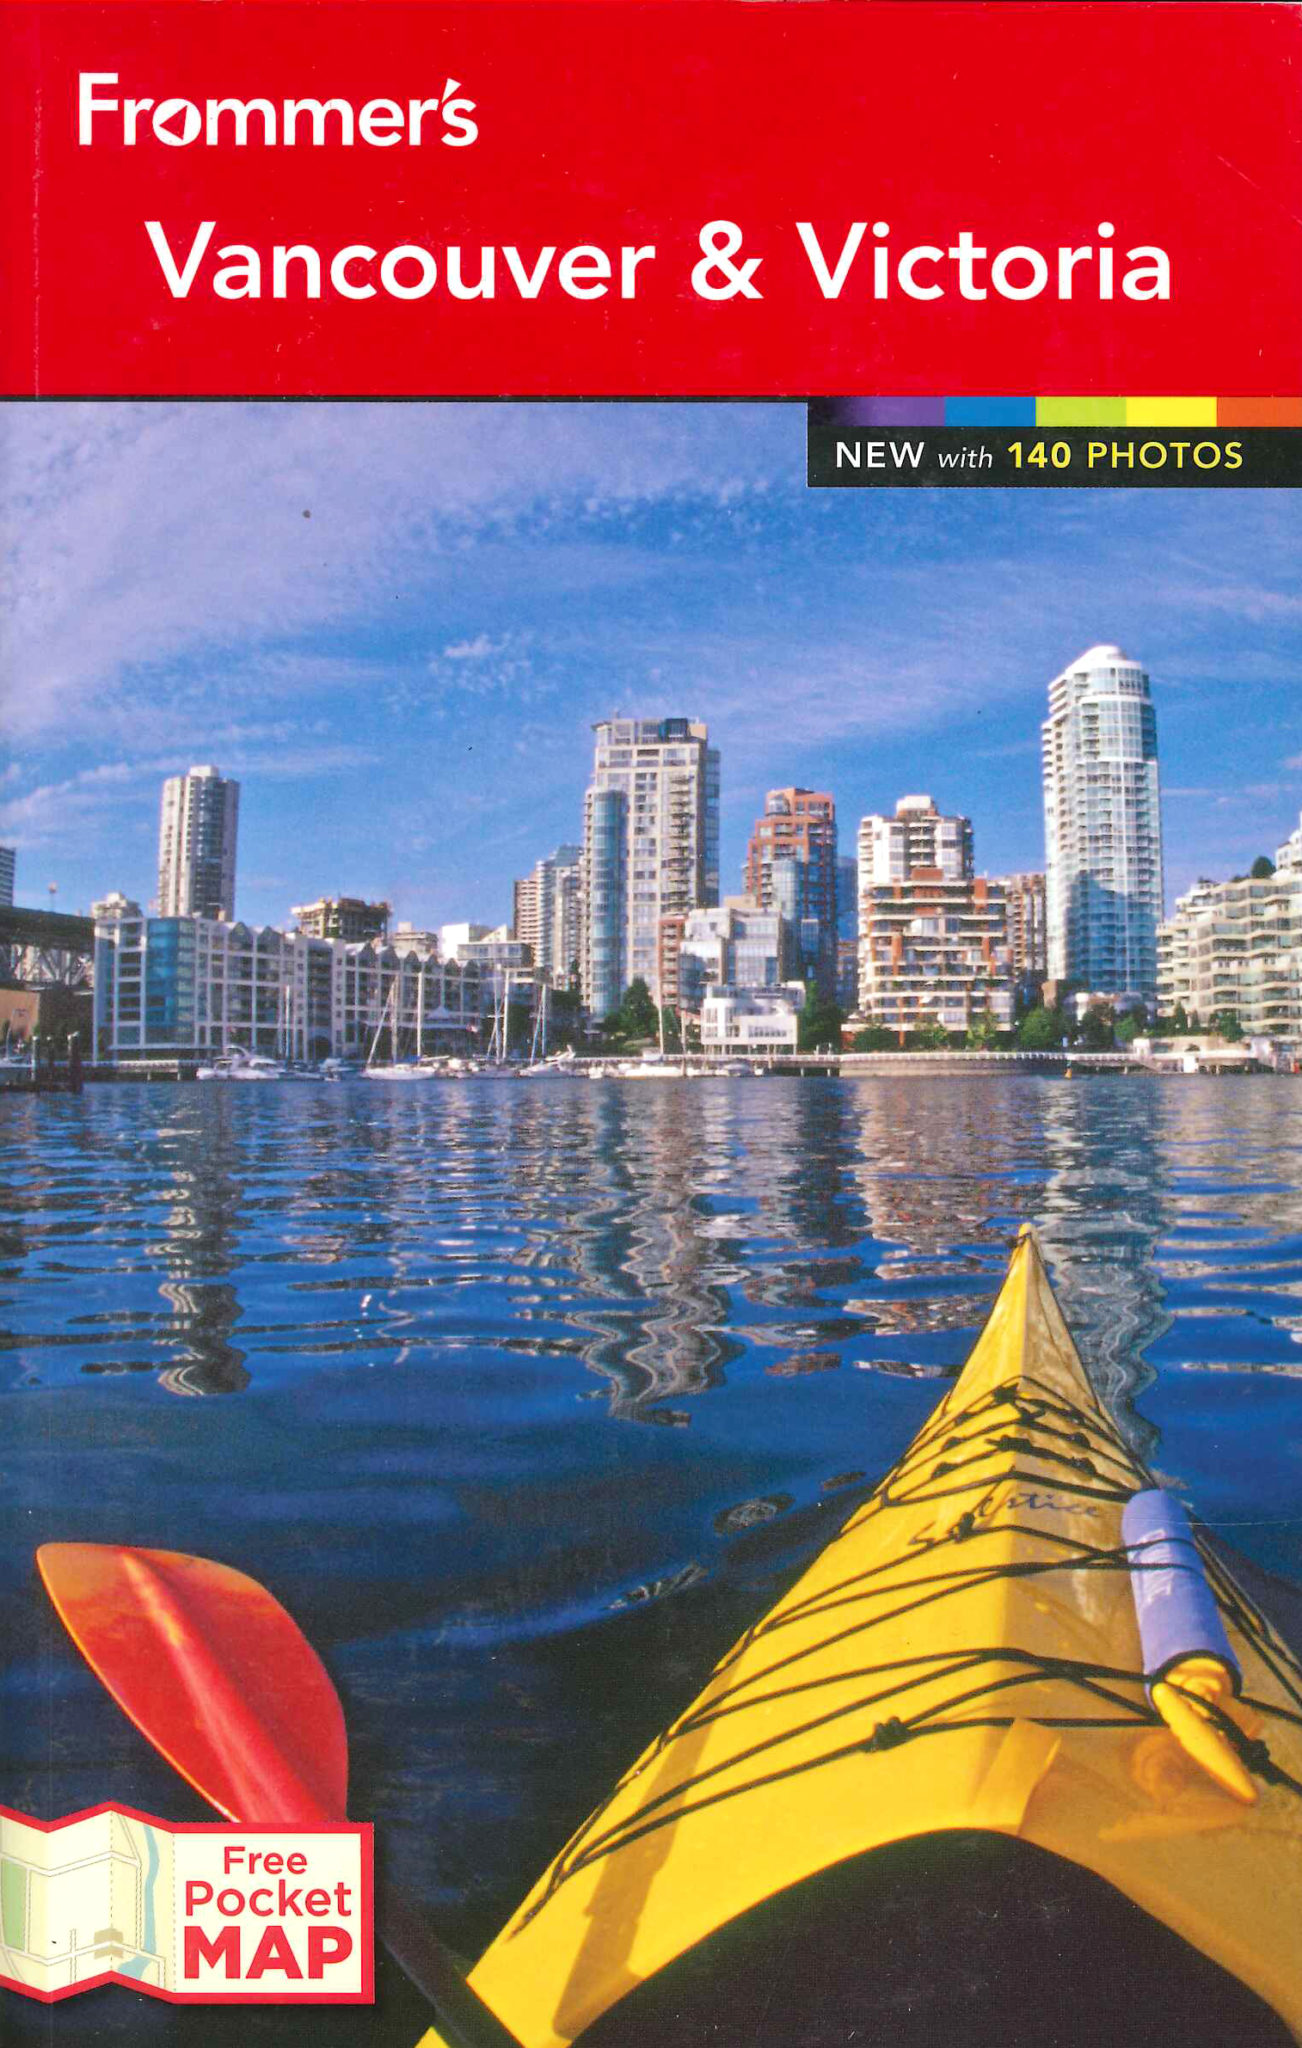 Frommer's Vancouver & Victoria